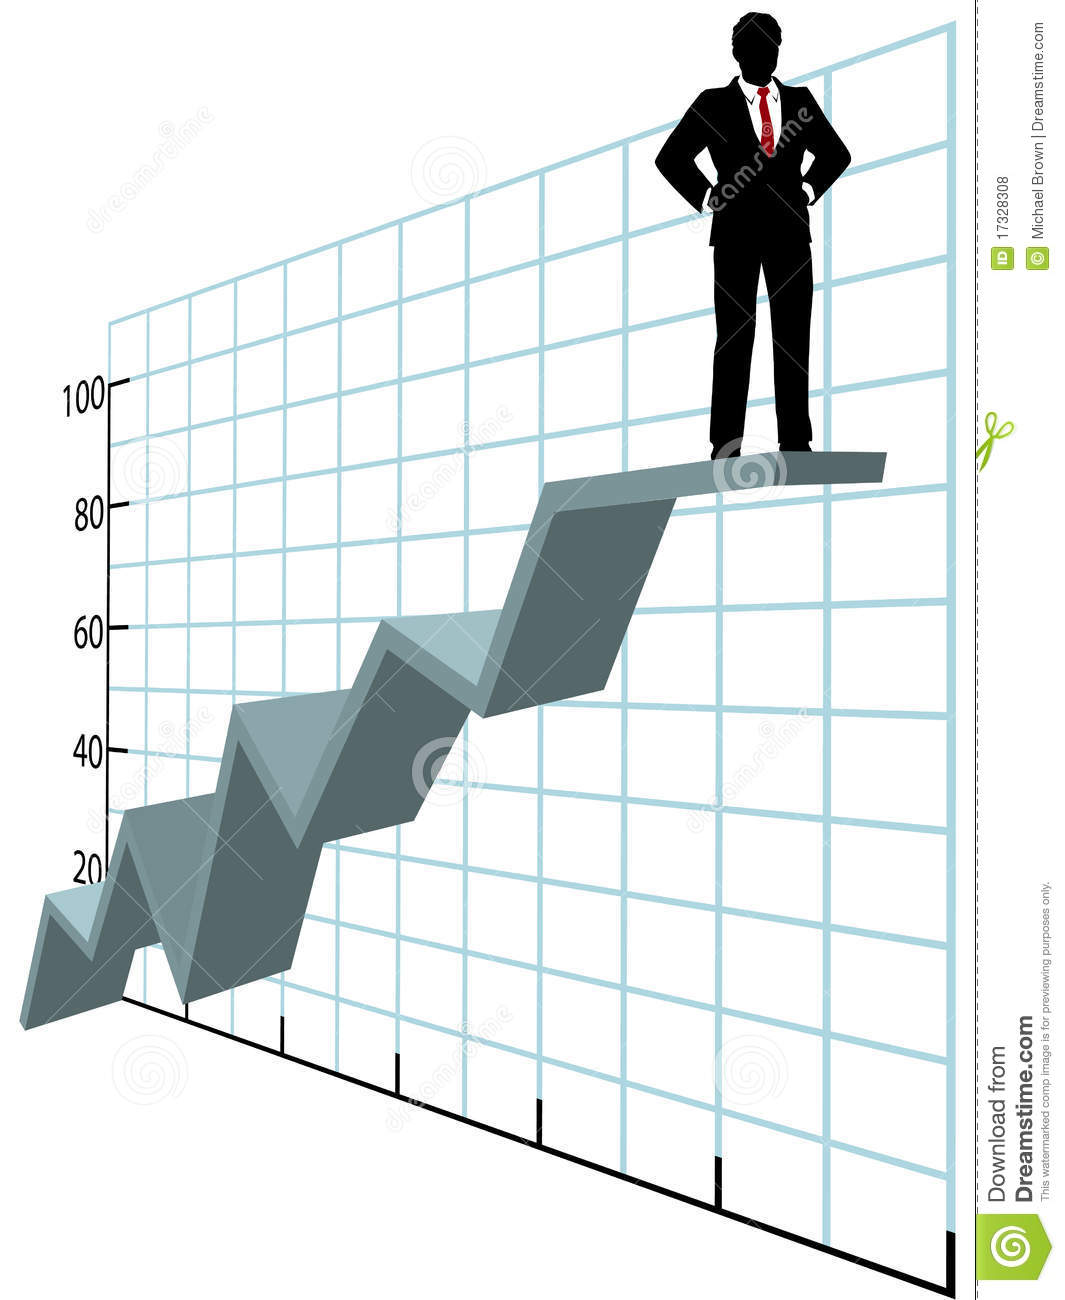 top company growth chart Business Growth Chart